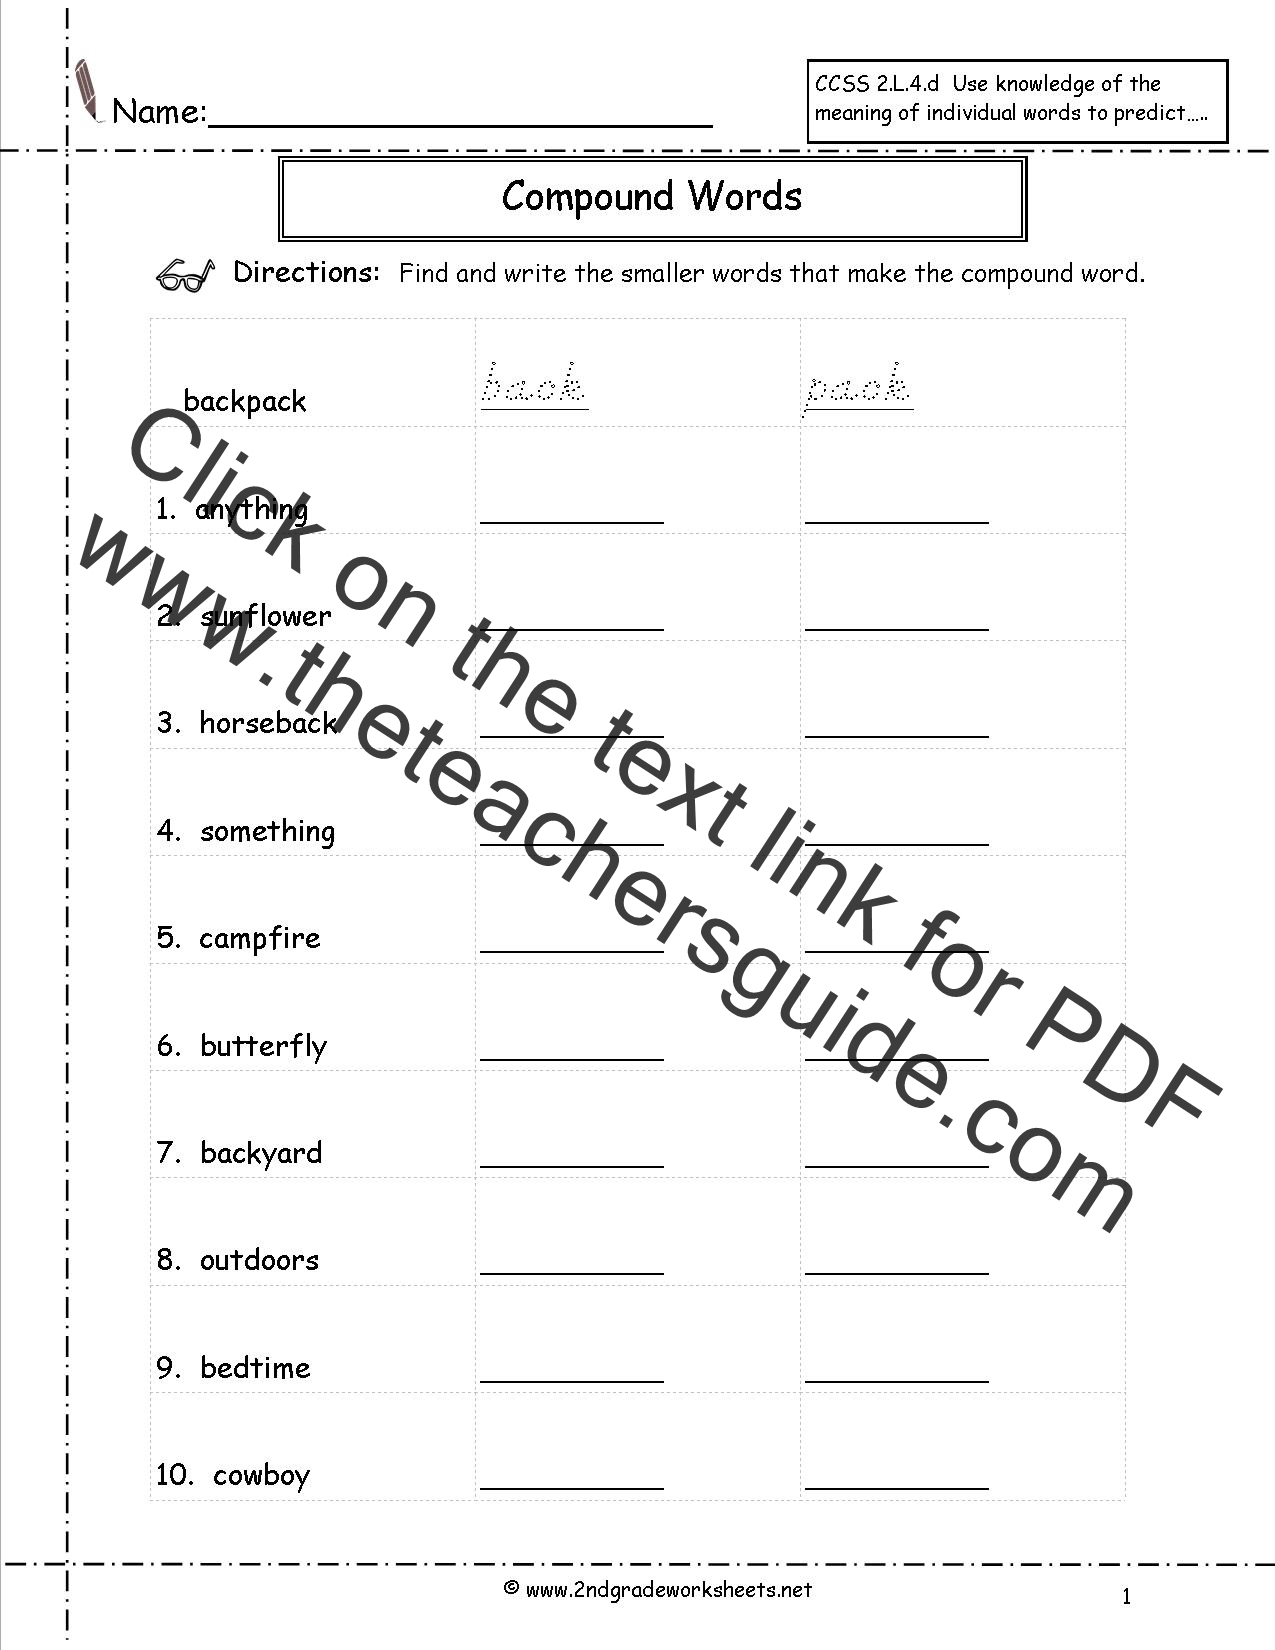 find how to write a resume essay on the destructors by graham – Printable Math Worksheets for 2nd Graders